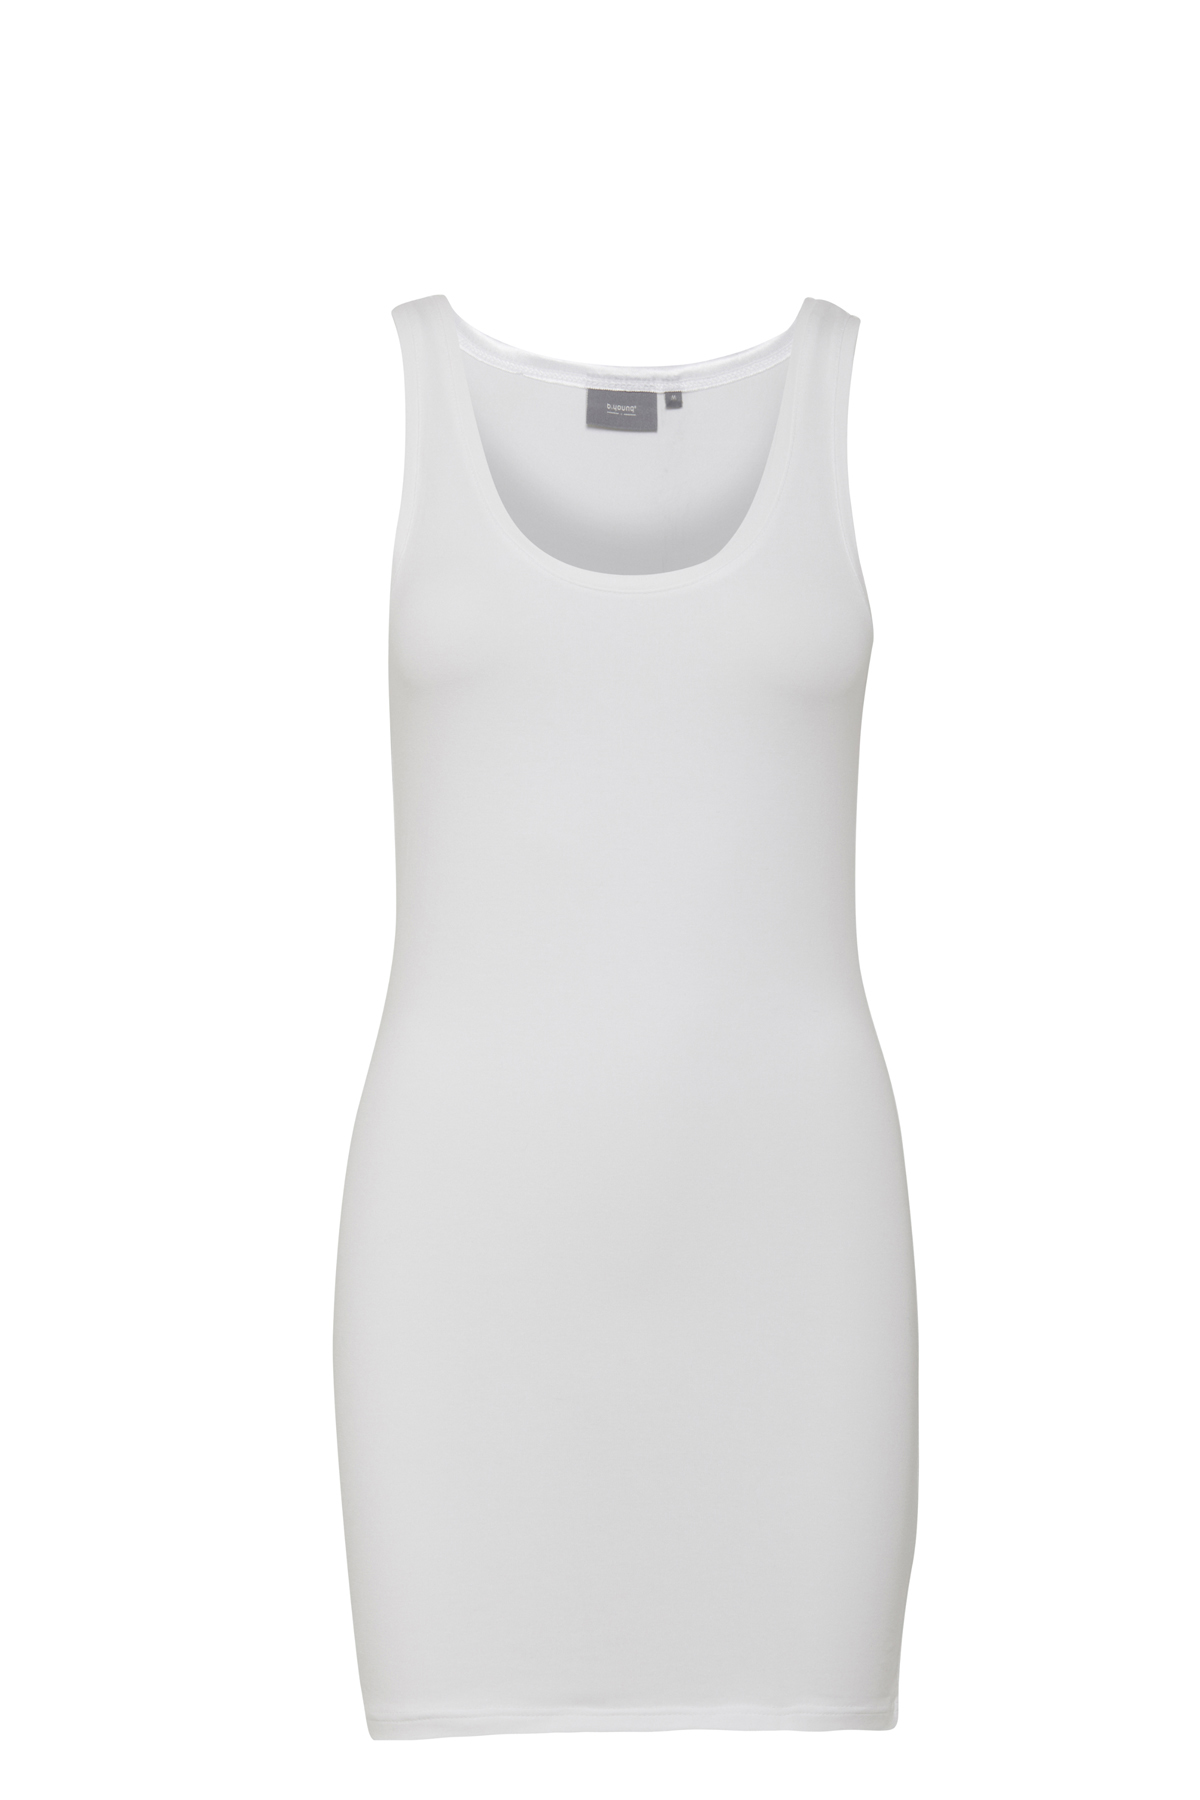 Optical White Top fra b.young – Køb Optical White Top fra str. XS-XXL her